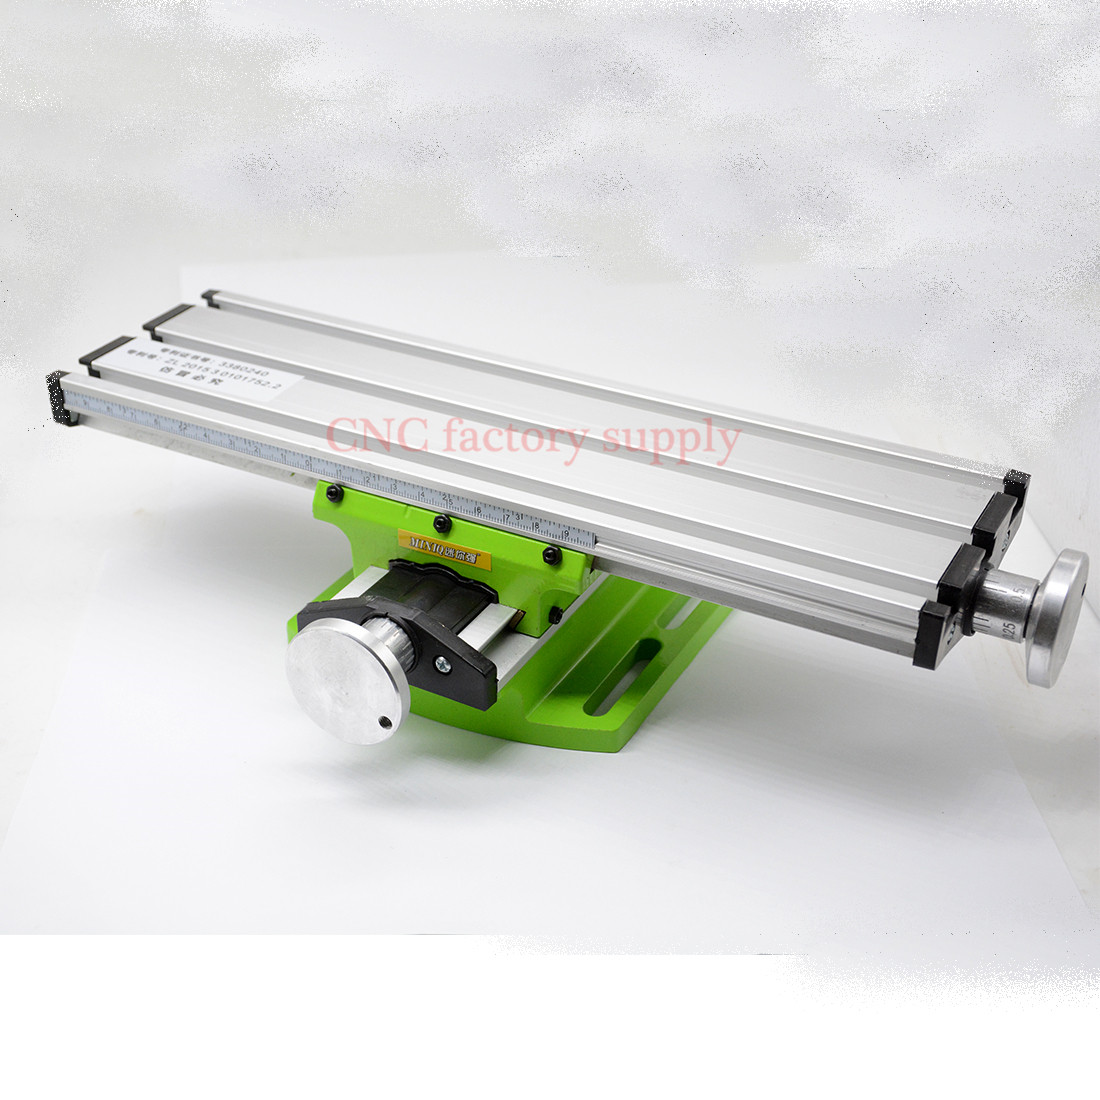 Hot sale Multifunctional Working Cross Table BG6300 Bench Vise drill milling machine stent hot sale c shaped waterfall acrylic occasional side table